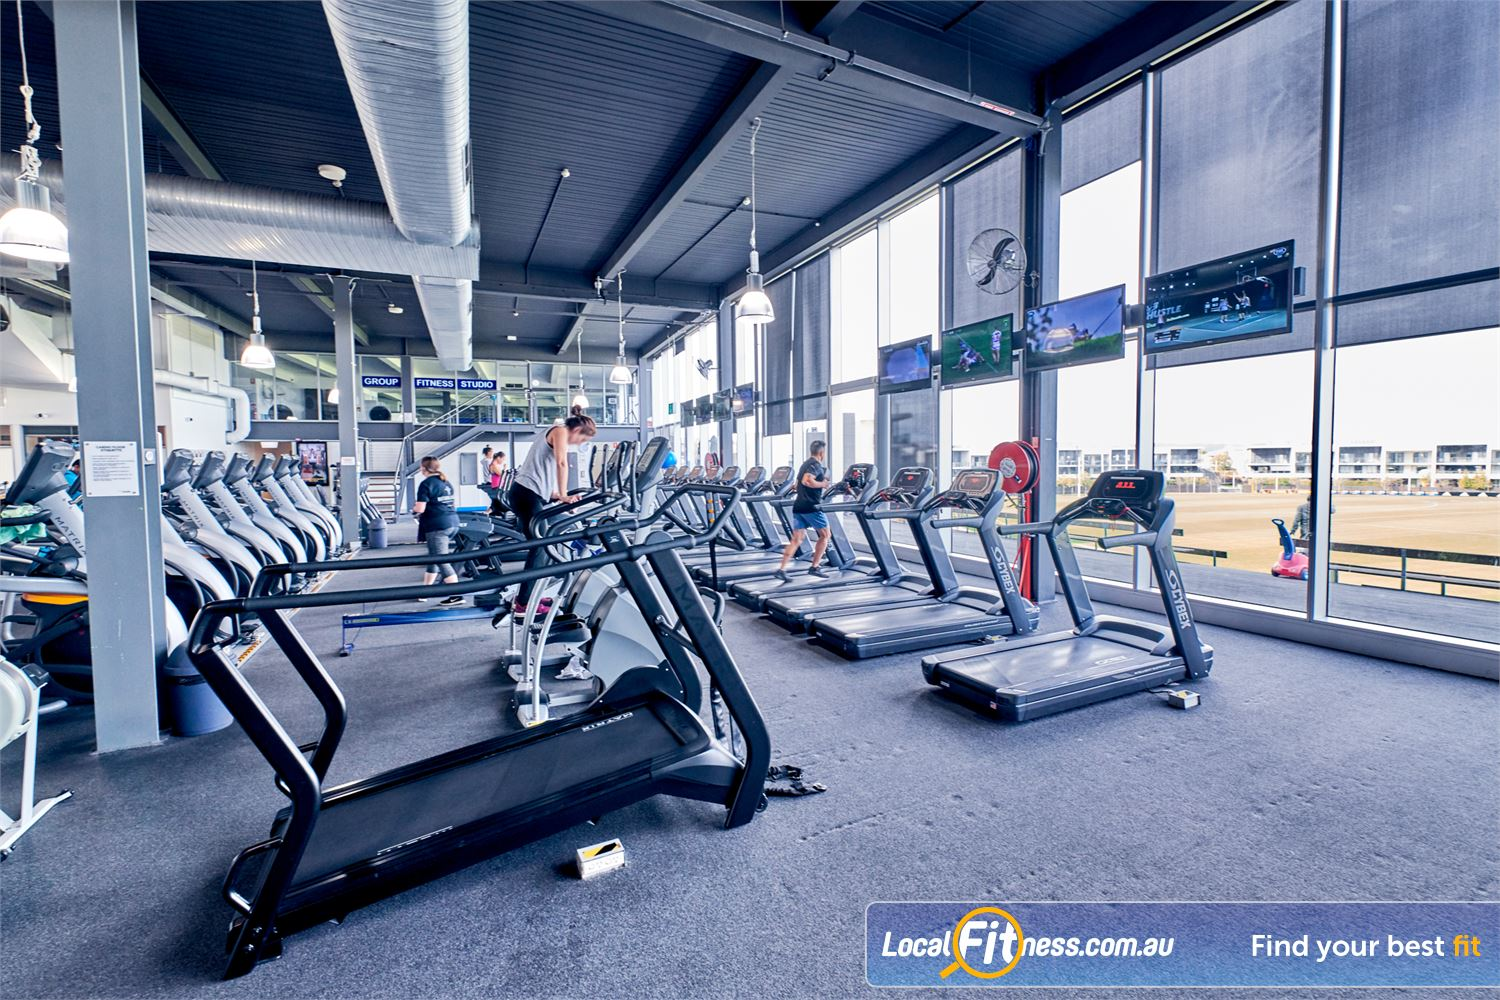 Goodlife Health Clubs Waverley Park Mulgrave The latest technology includes the functional cardio S-Drive performance trainer.